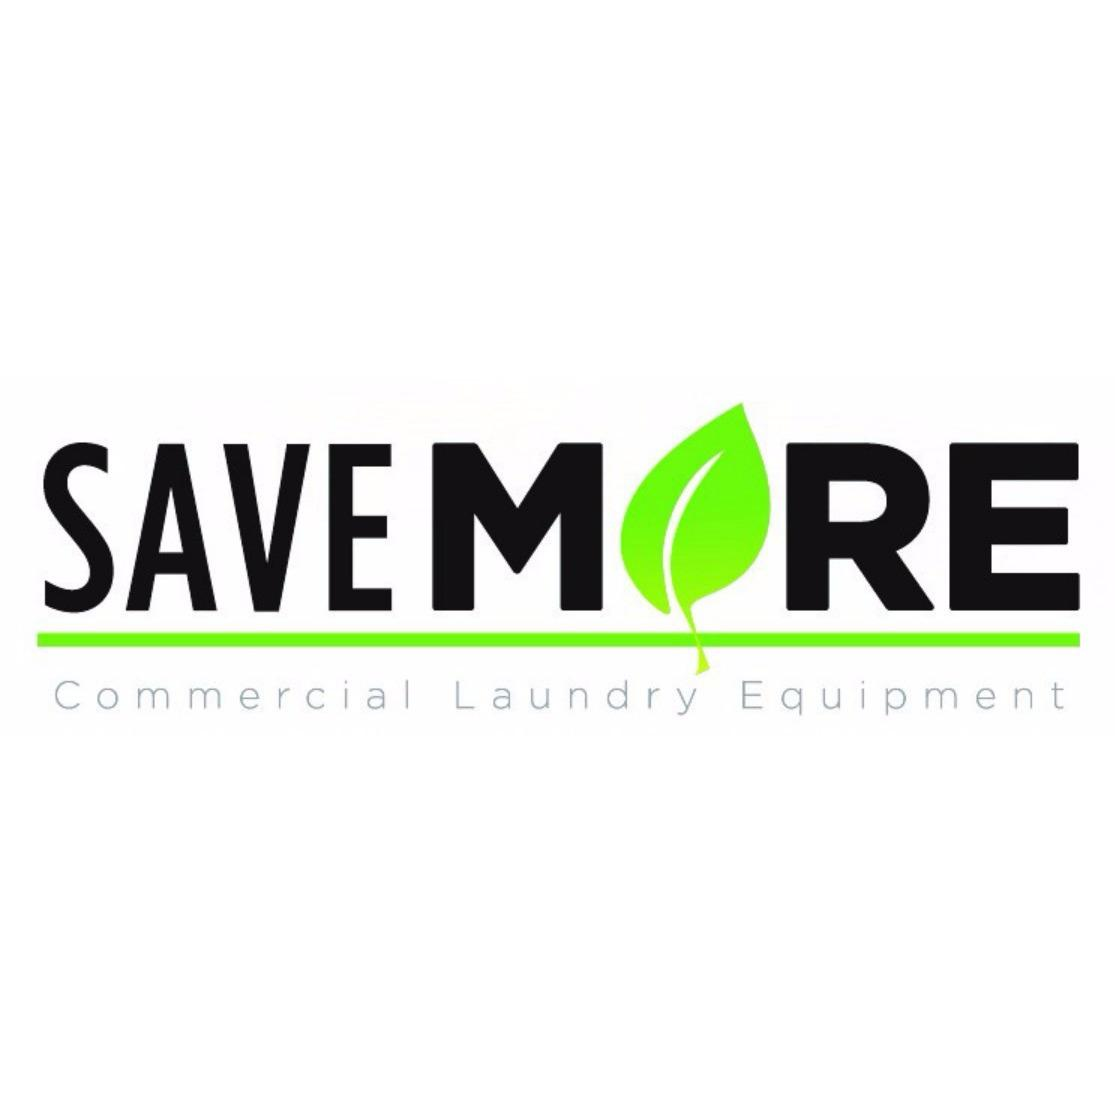 Savemore Commercial Laundry